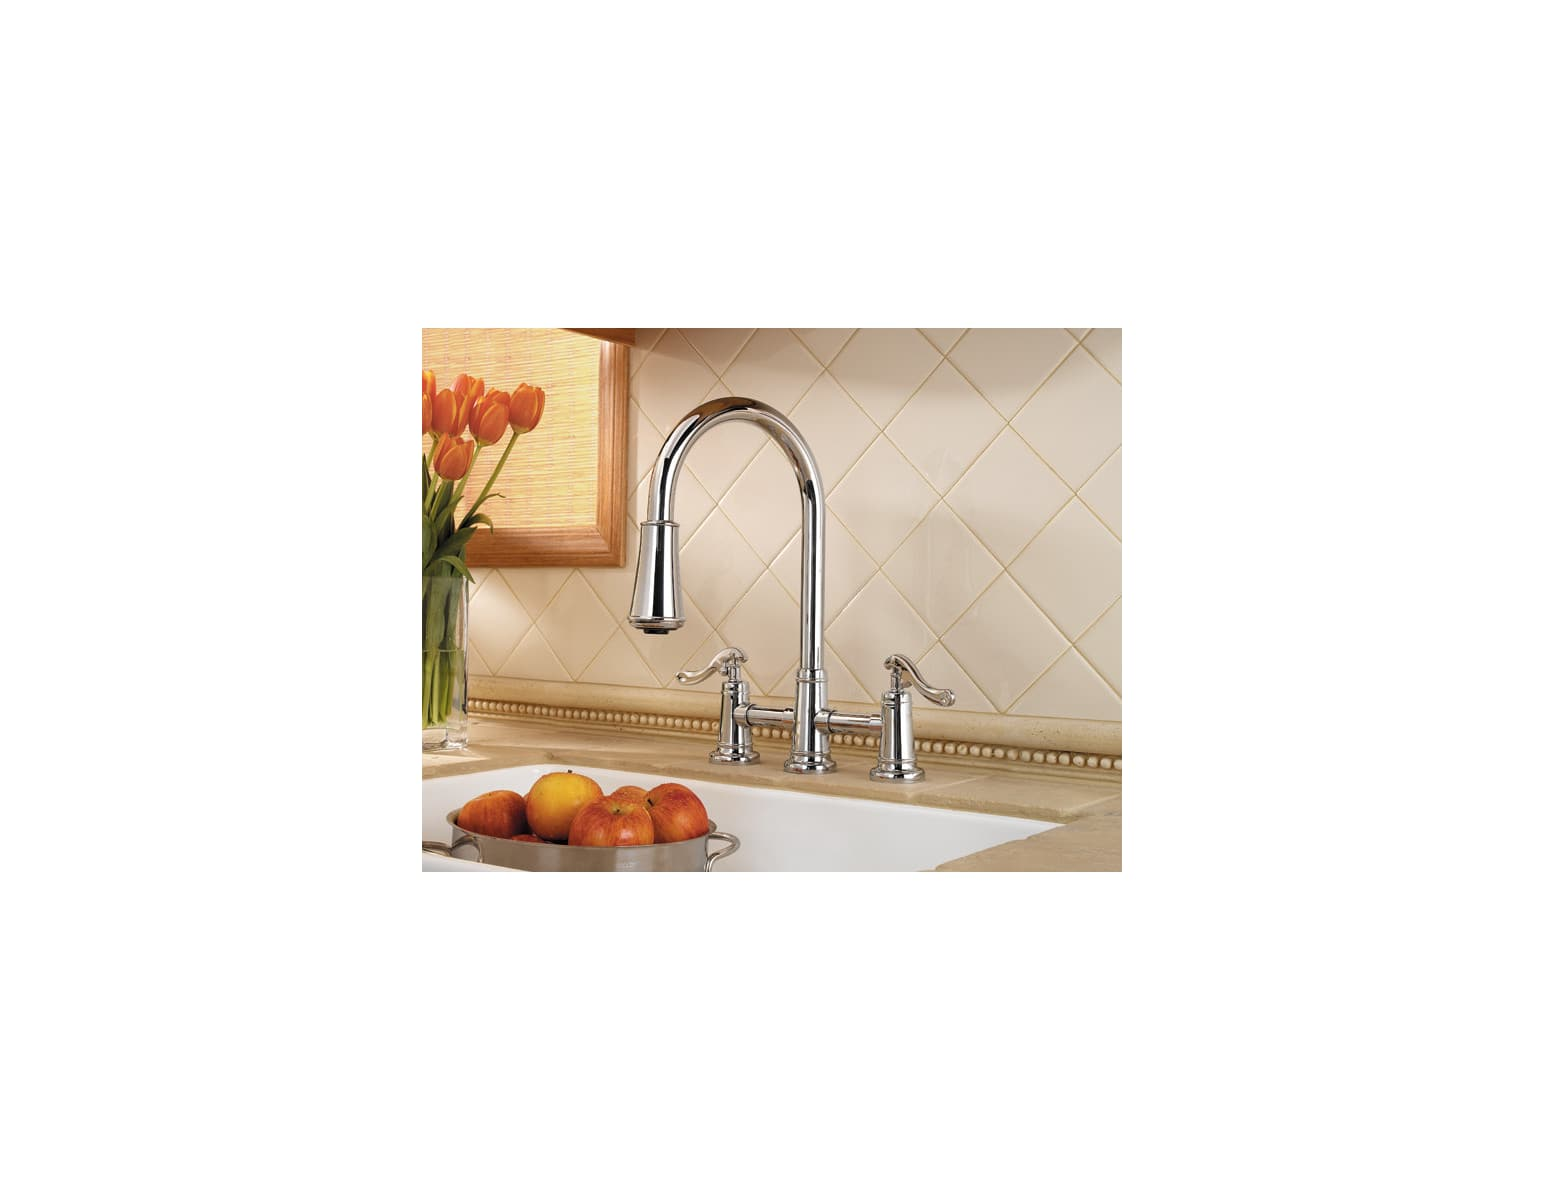 Pfister Lg531 Ypk Brushed Nickel Ashfield 2 Handle Pull Down Kitchen Gt Plumbing Systems Diagram Faucet With Accudock Sprayhead Flex Line Supply Lines And Pfast Connect Technologies